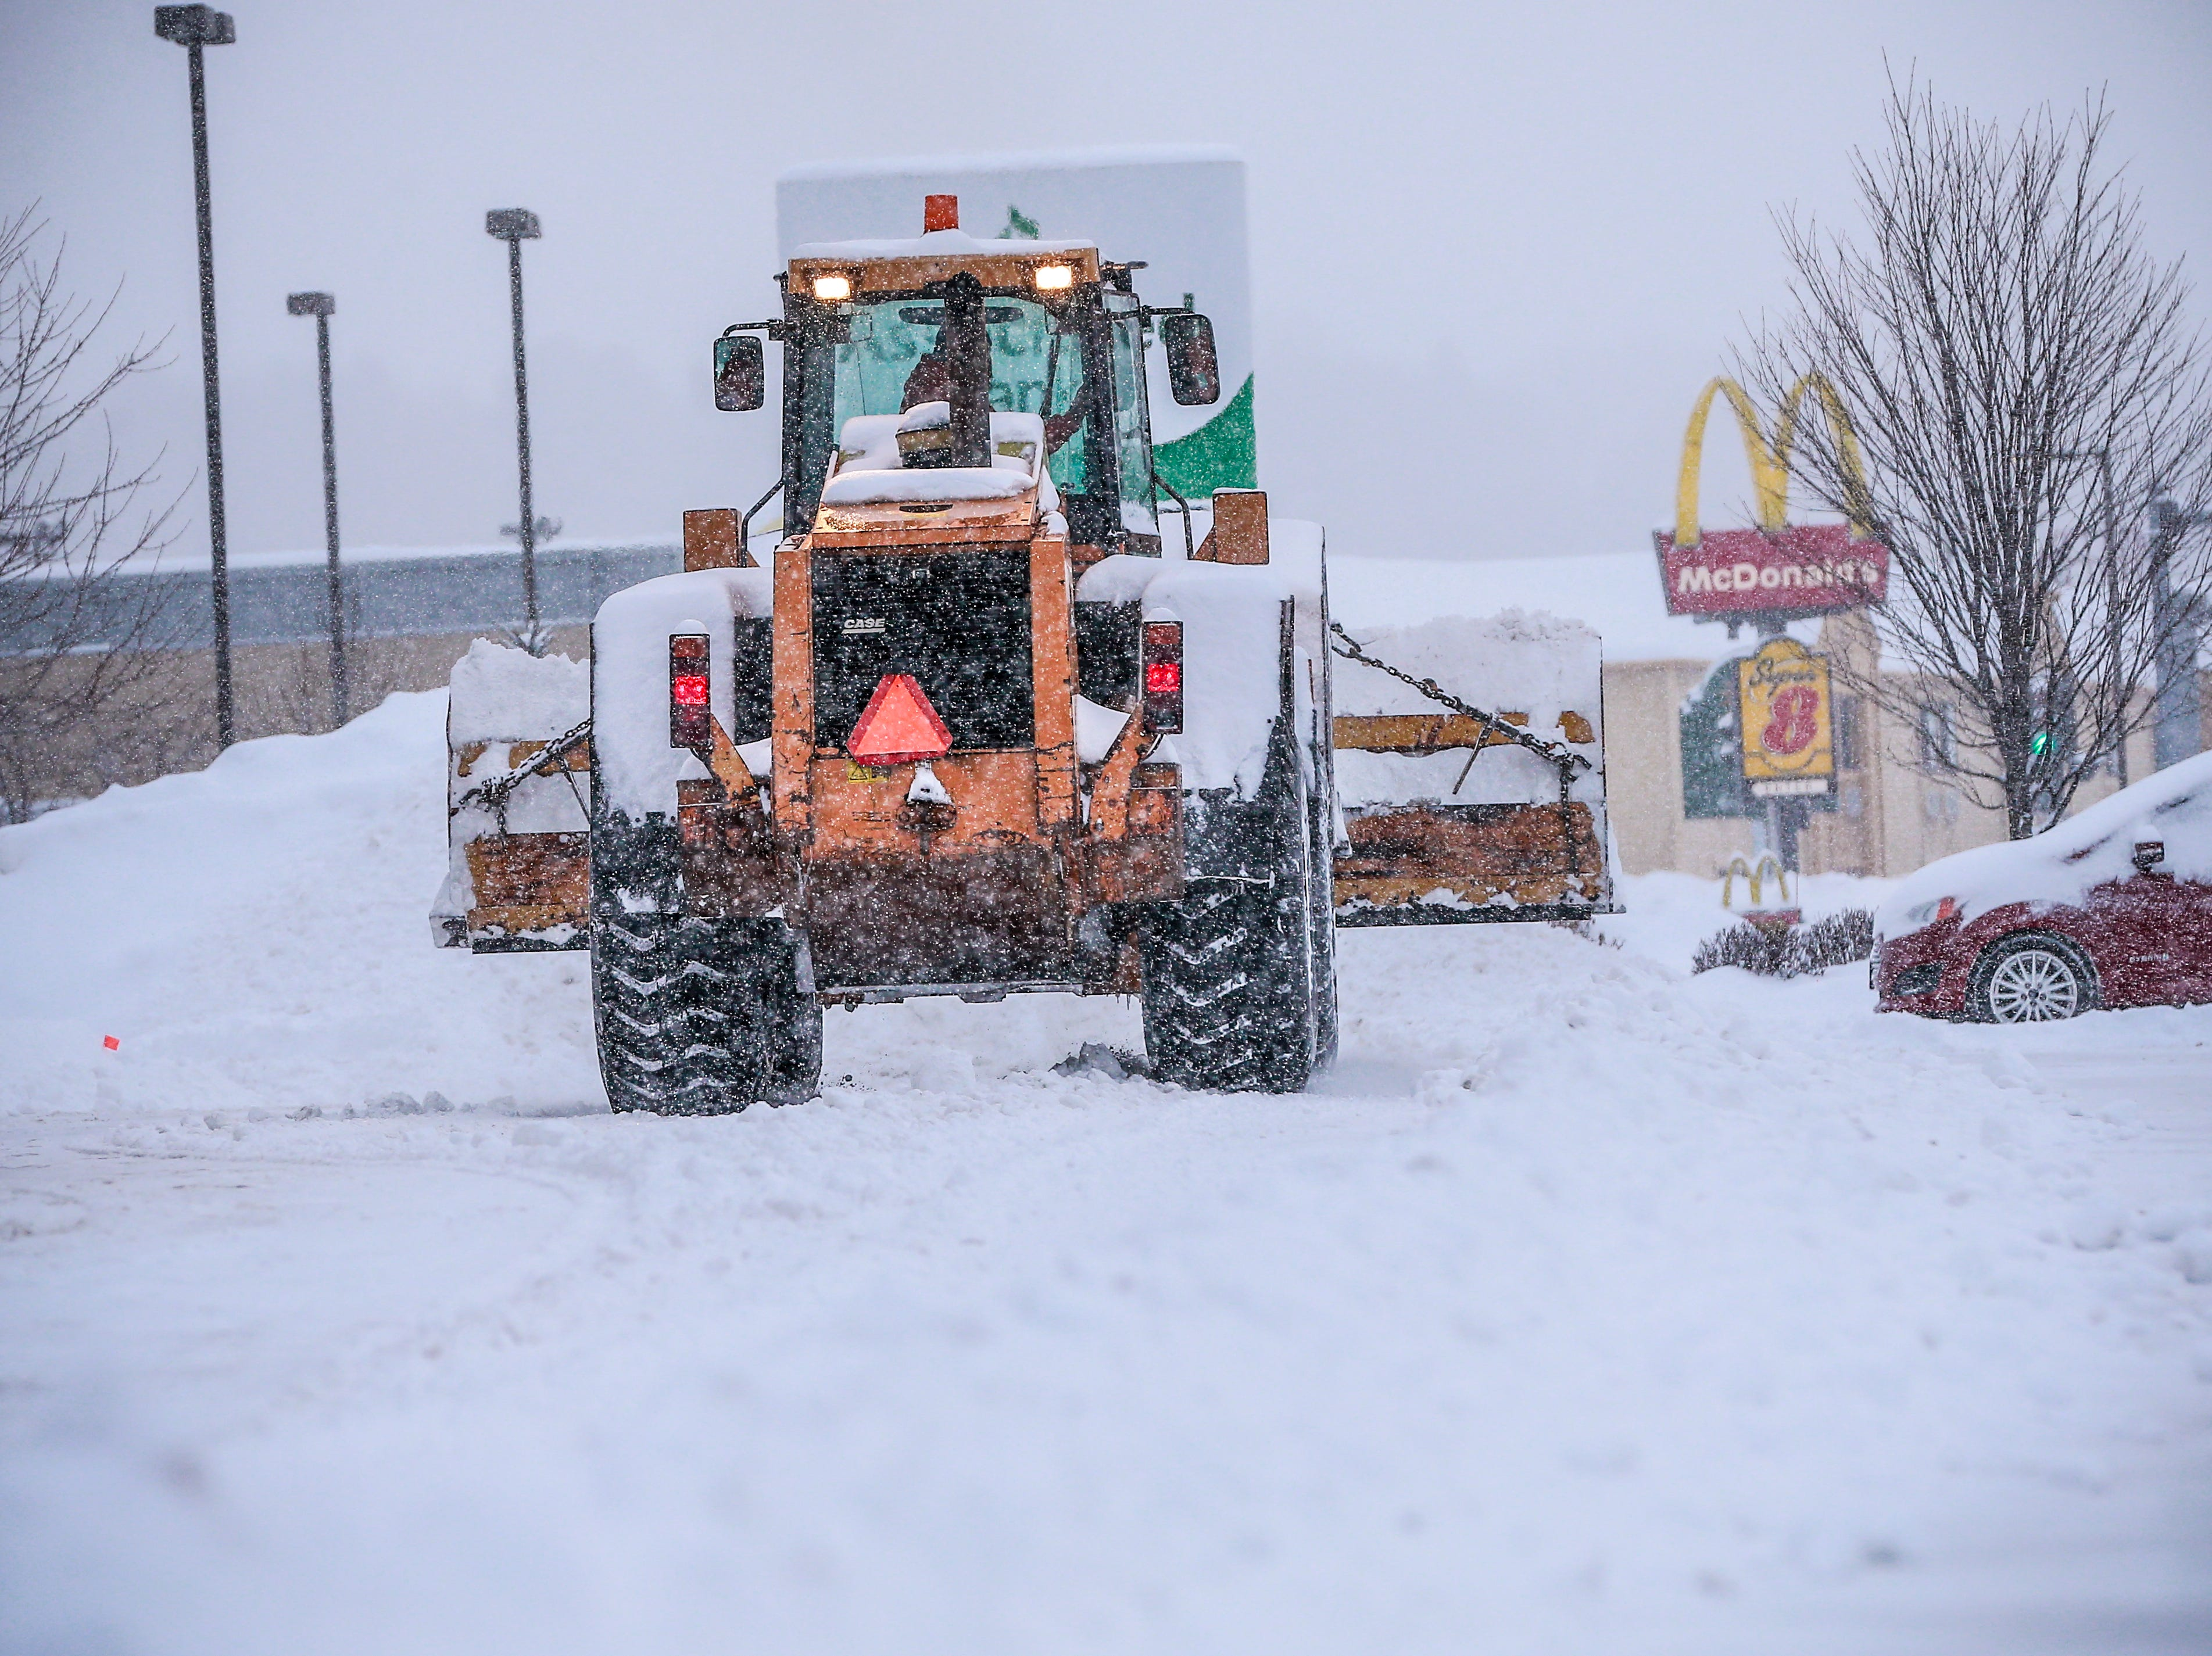 A construction vehicle plows snow during a snowstorm Thursday, Feb. 07, 2019, in Wausau, Wis. T'xer Zhon Kha/USA TODAY NETWORK-Wisconsin